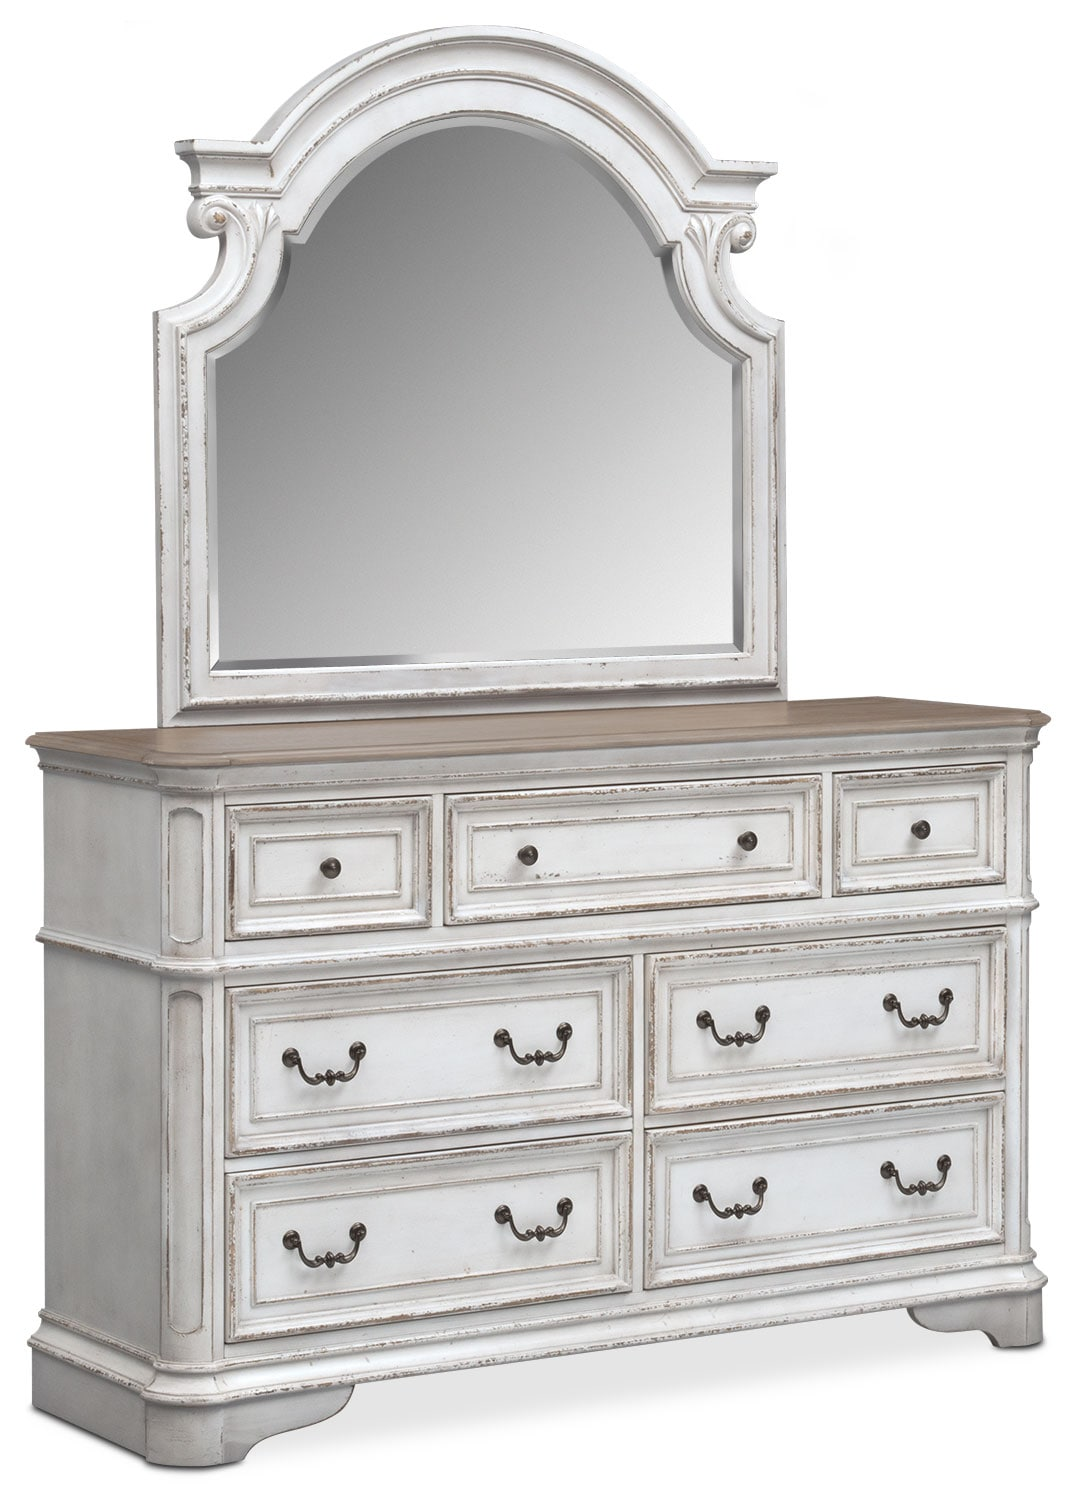 Marcelle Dresser And Mirror Vintage White Value City Furniture